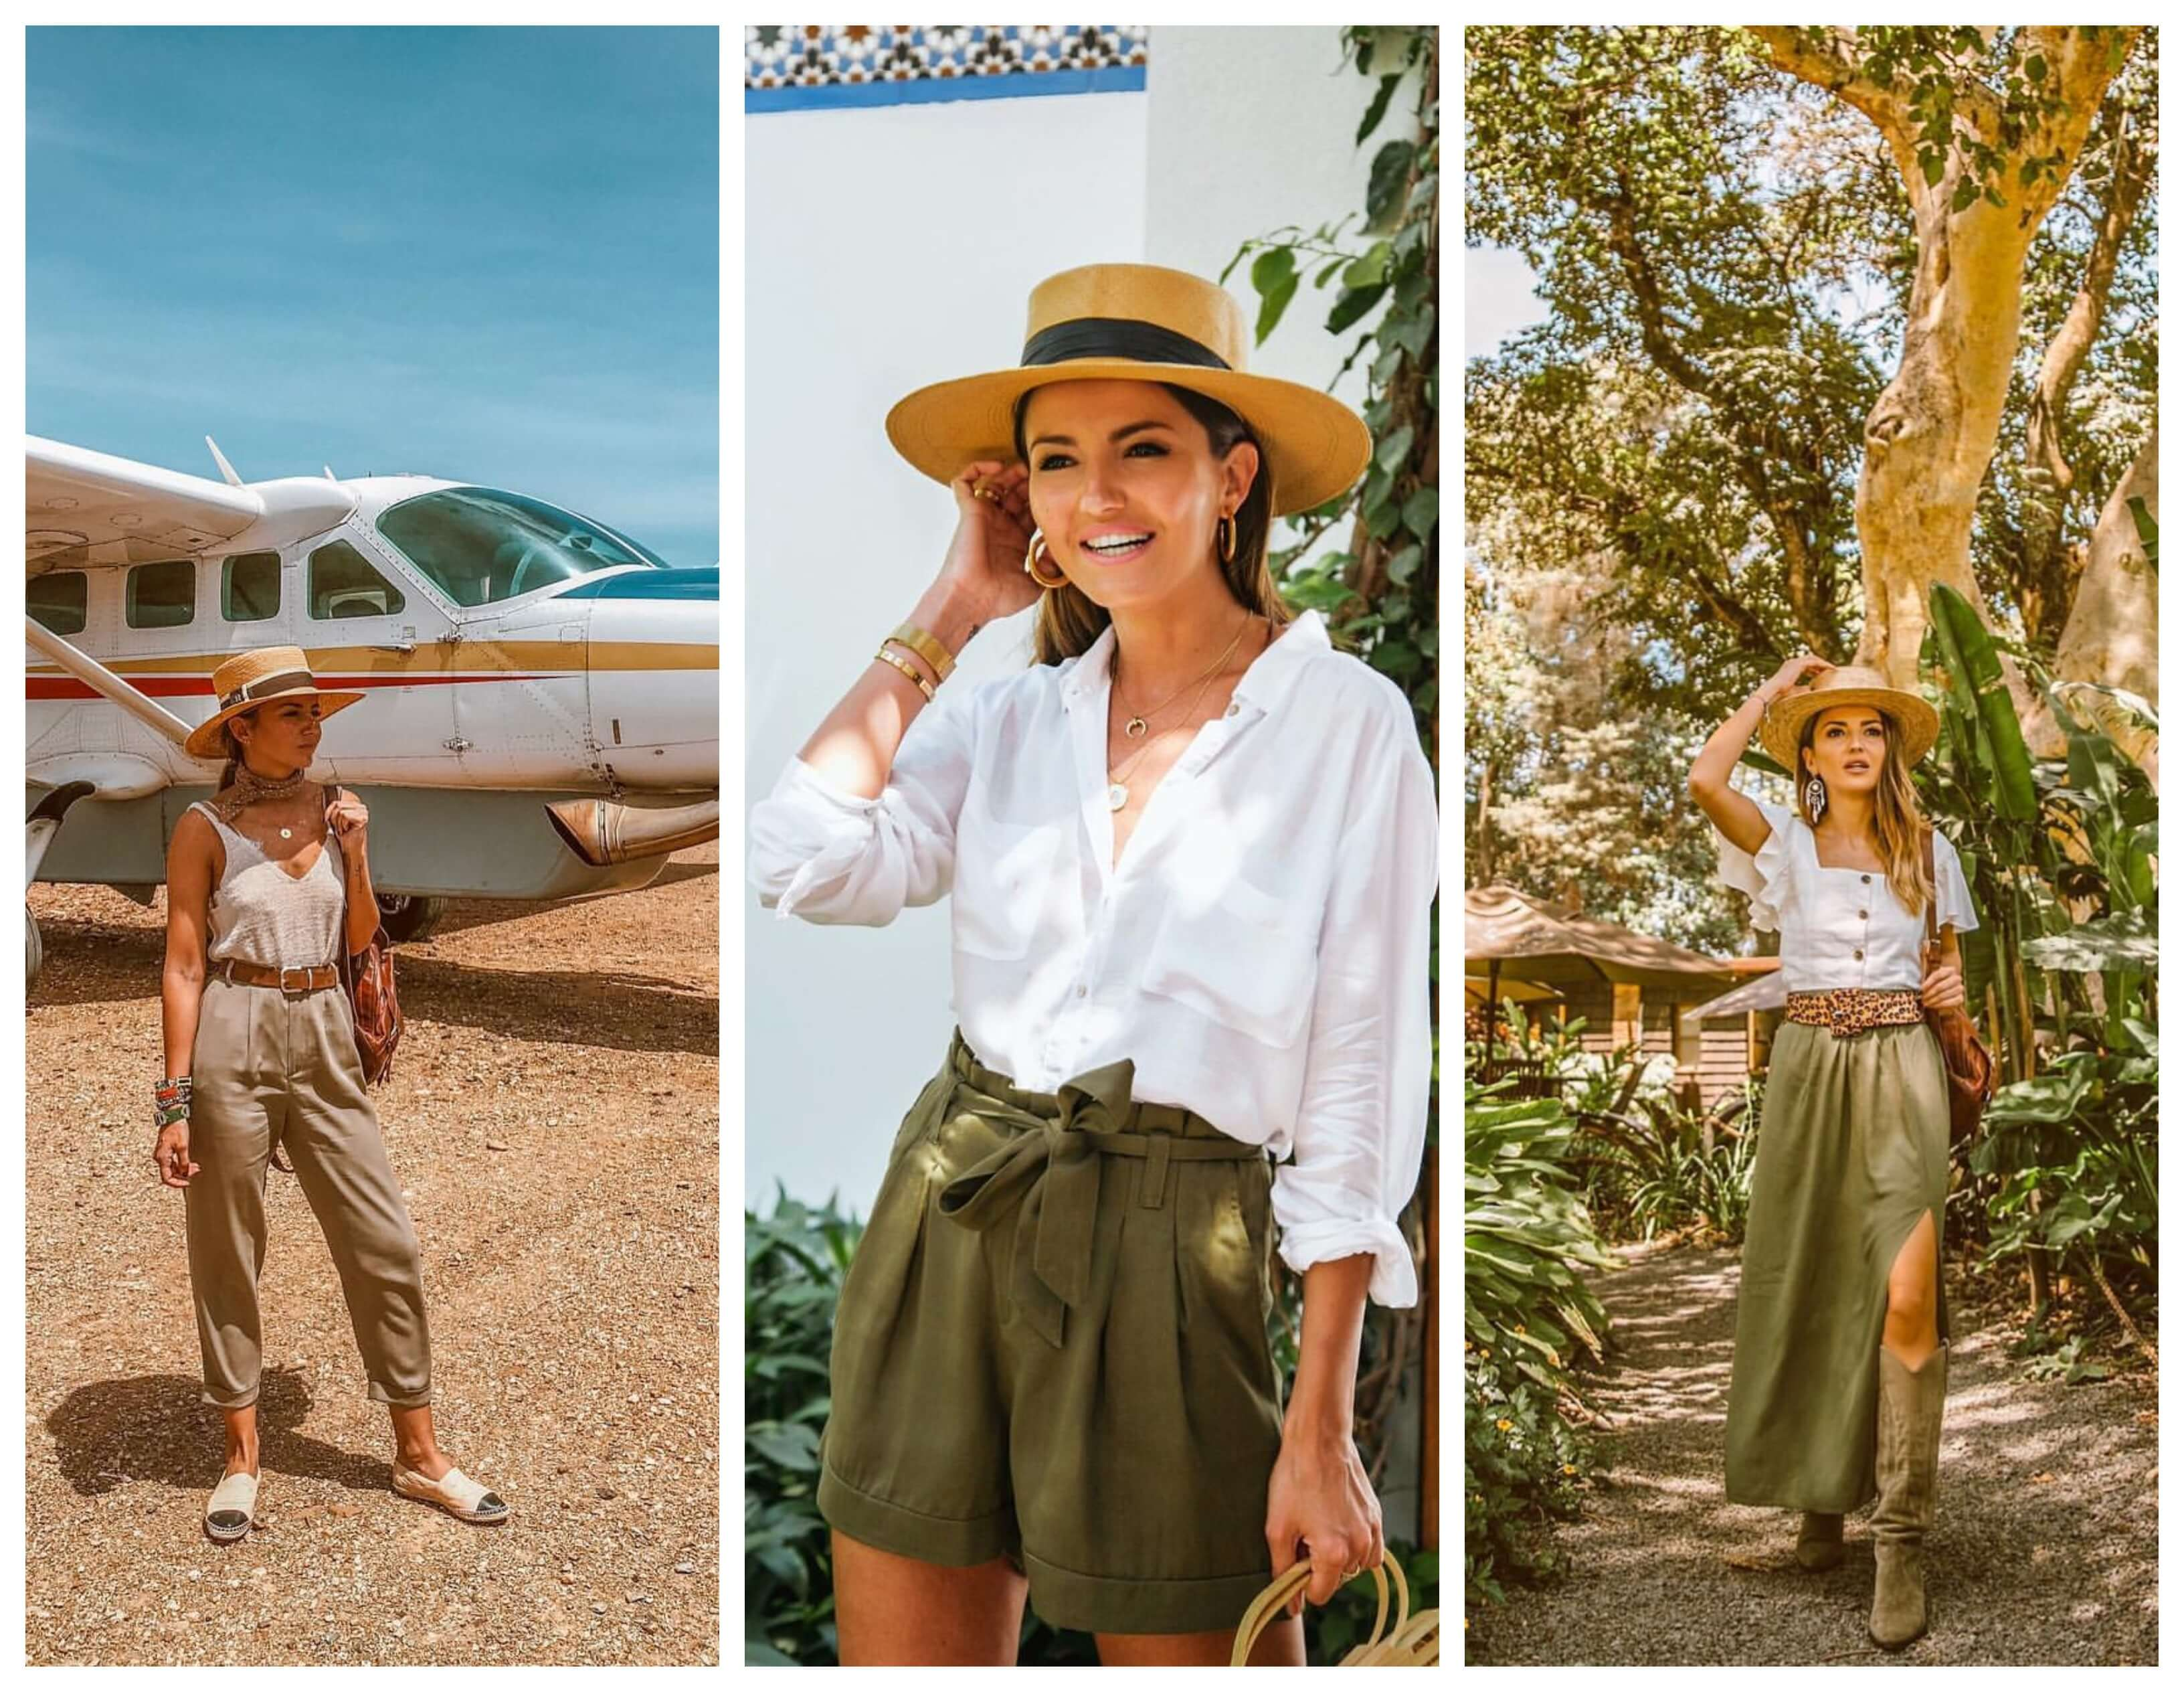 Estilo safari, 3 looks.